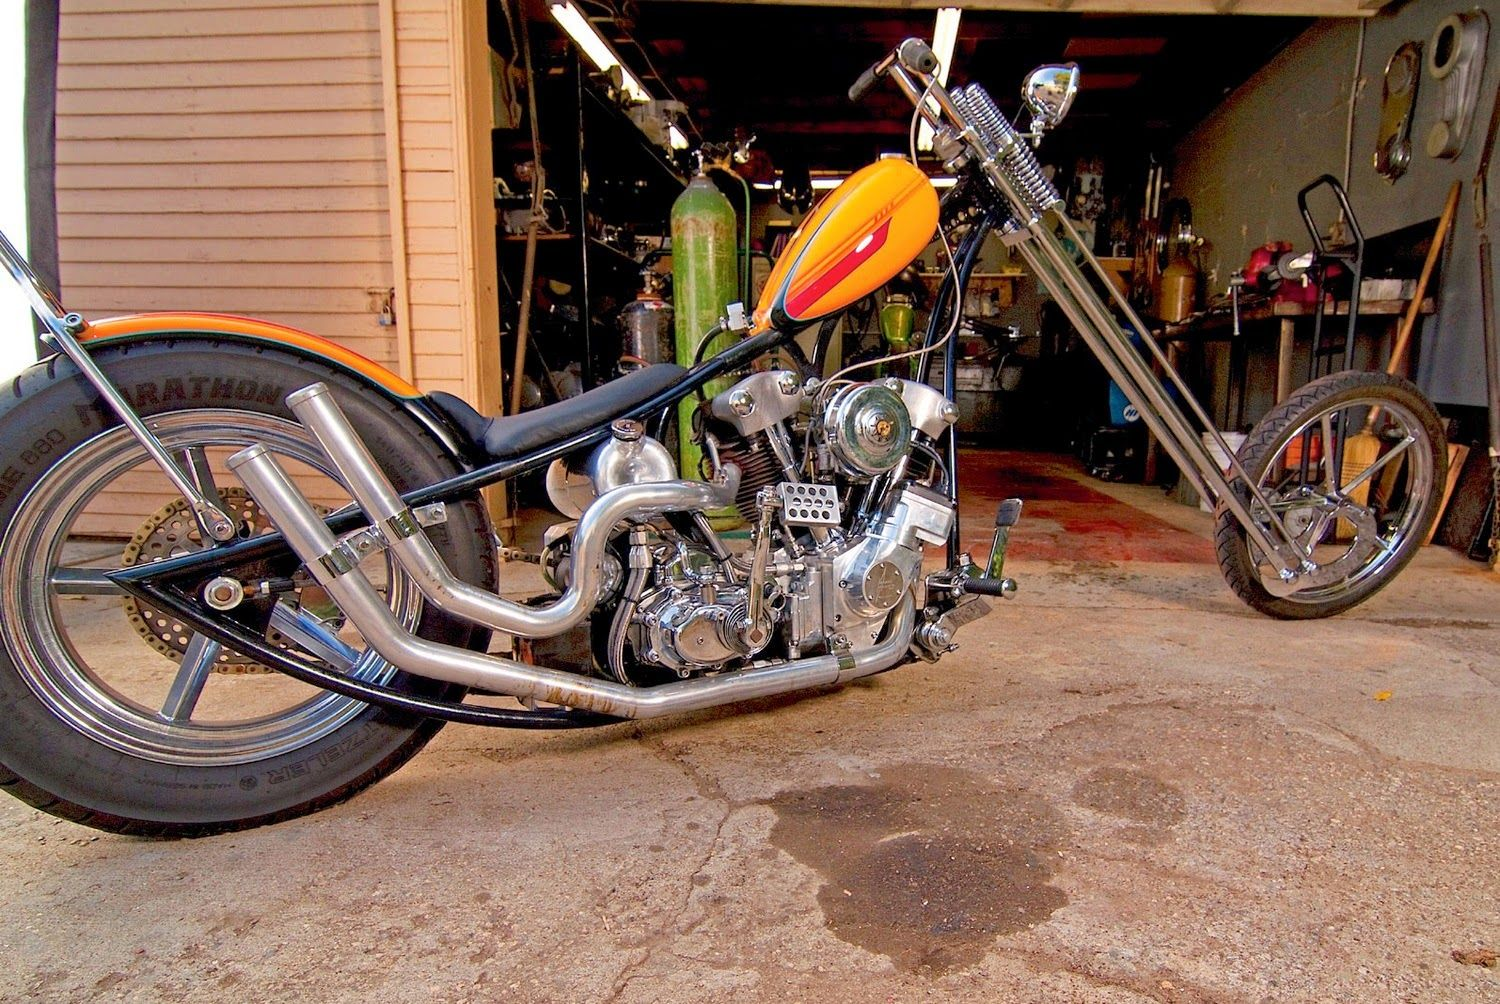 Stretch knucklehead chopper with a Sugar Bear front end and